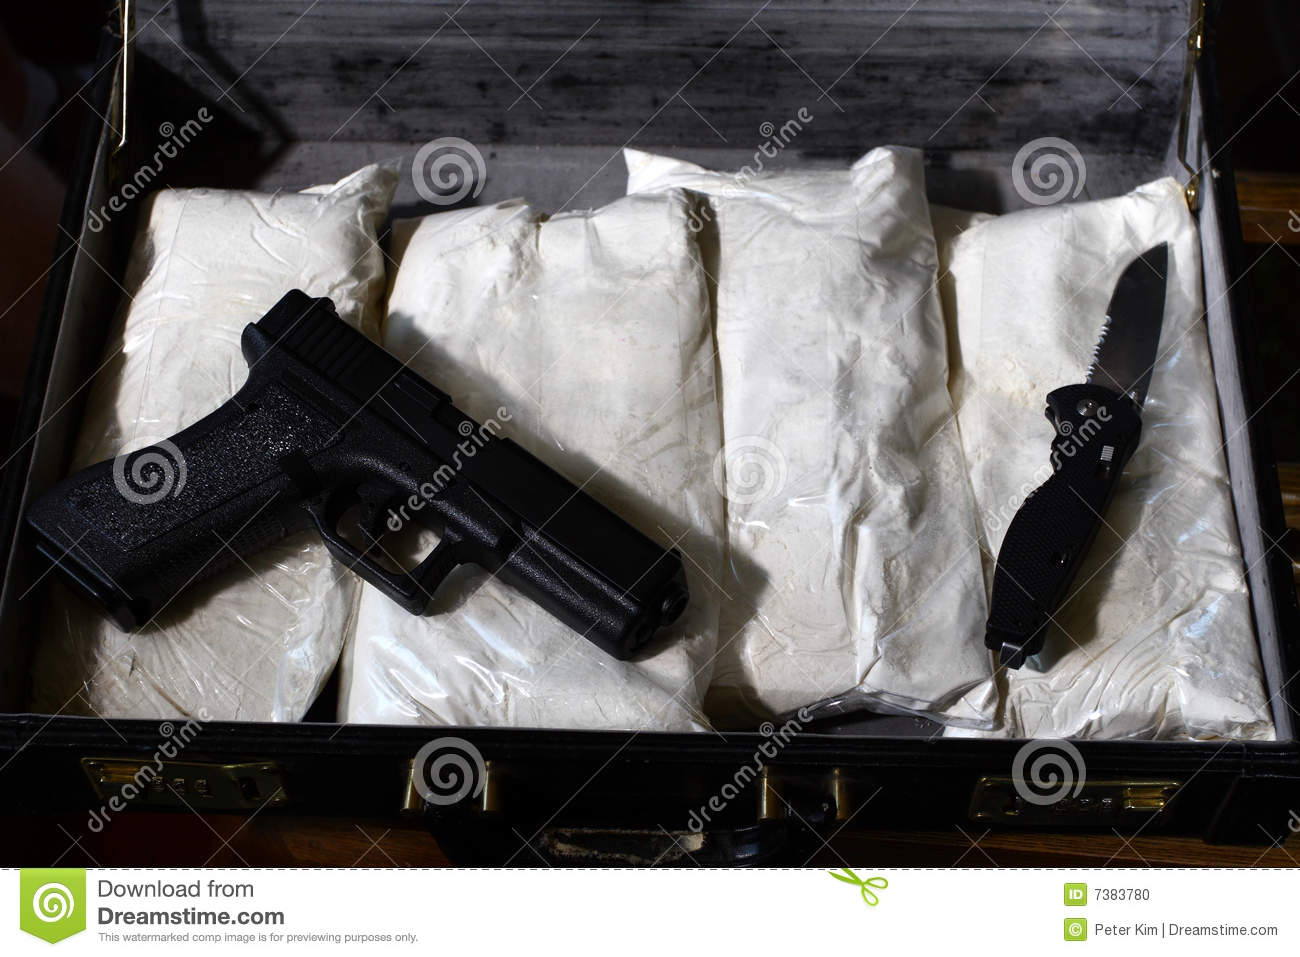 Briefcase with drugs and gun